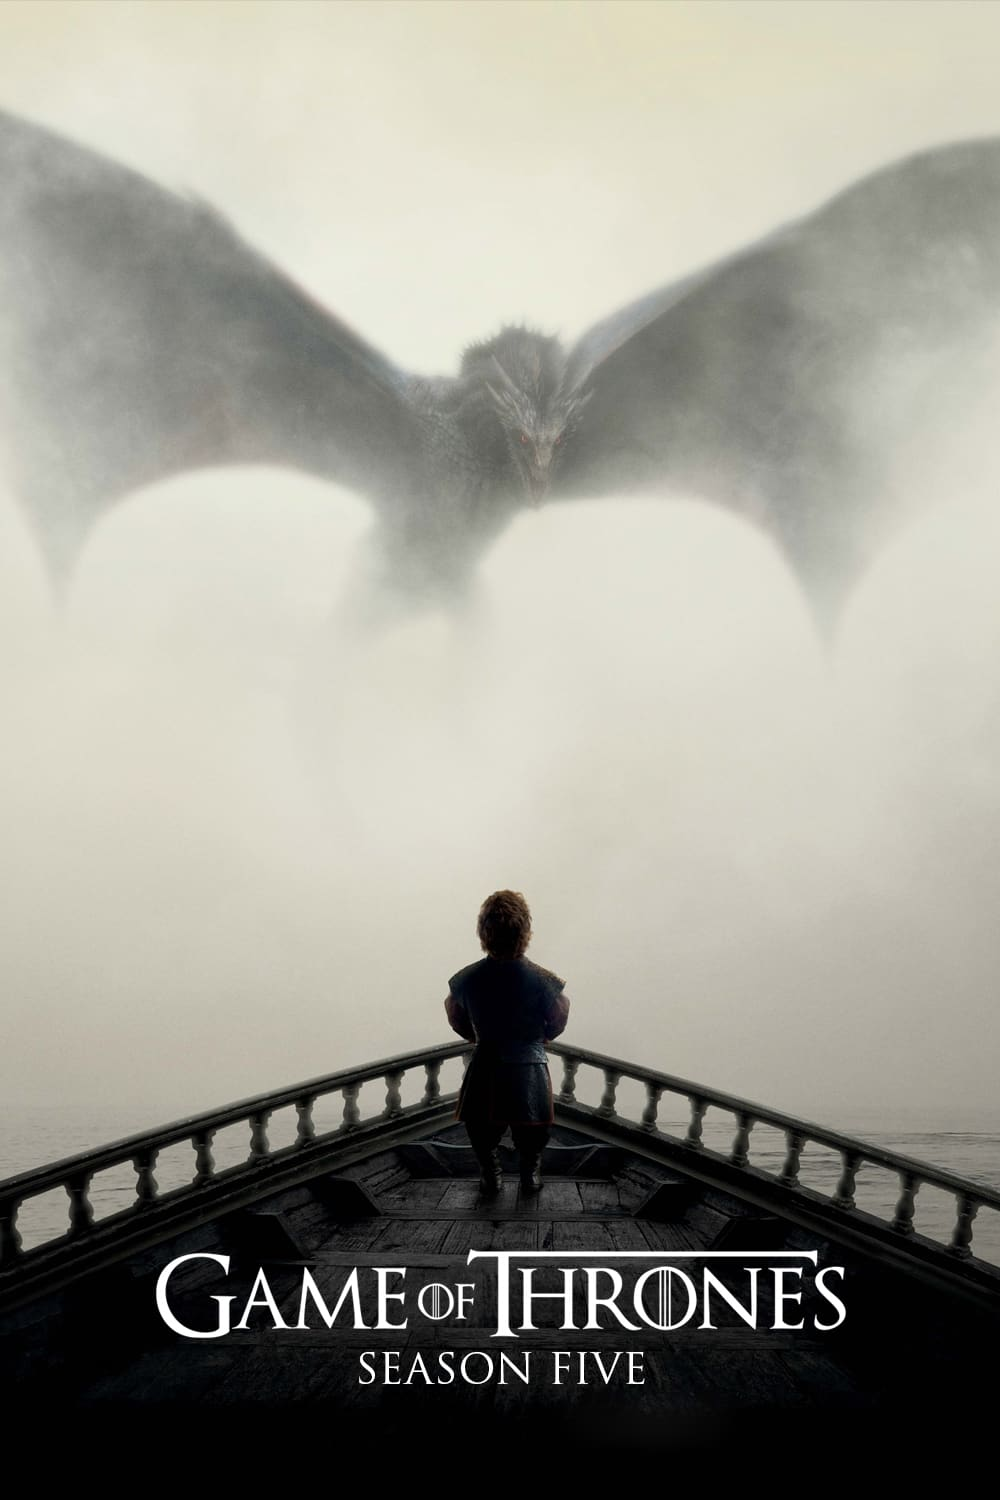 Game of Thrones Season 5